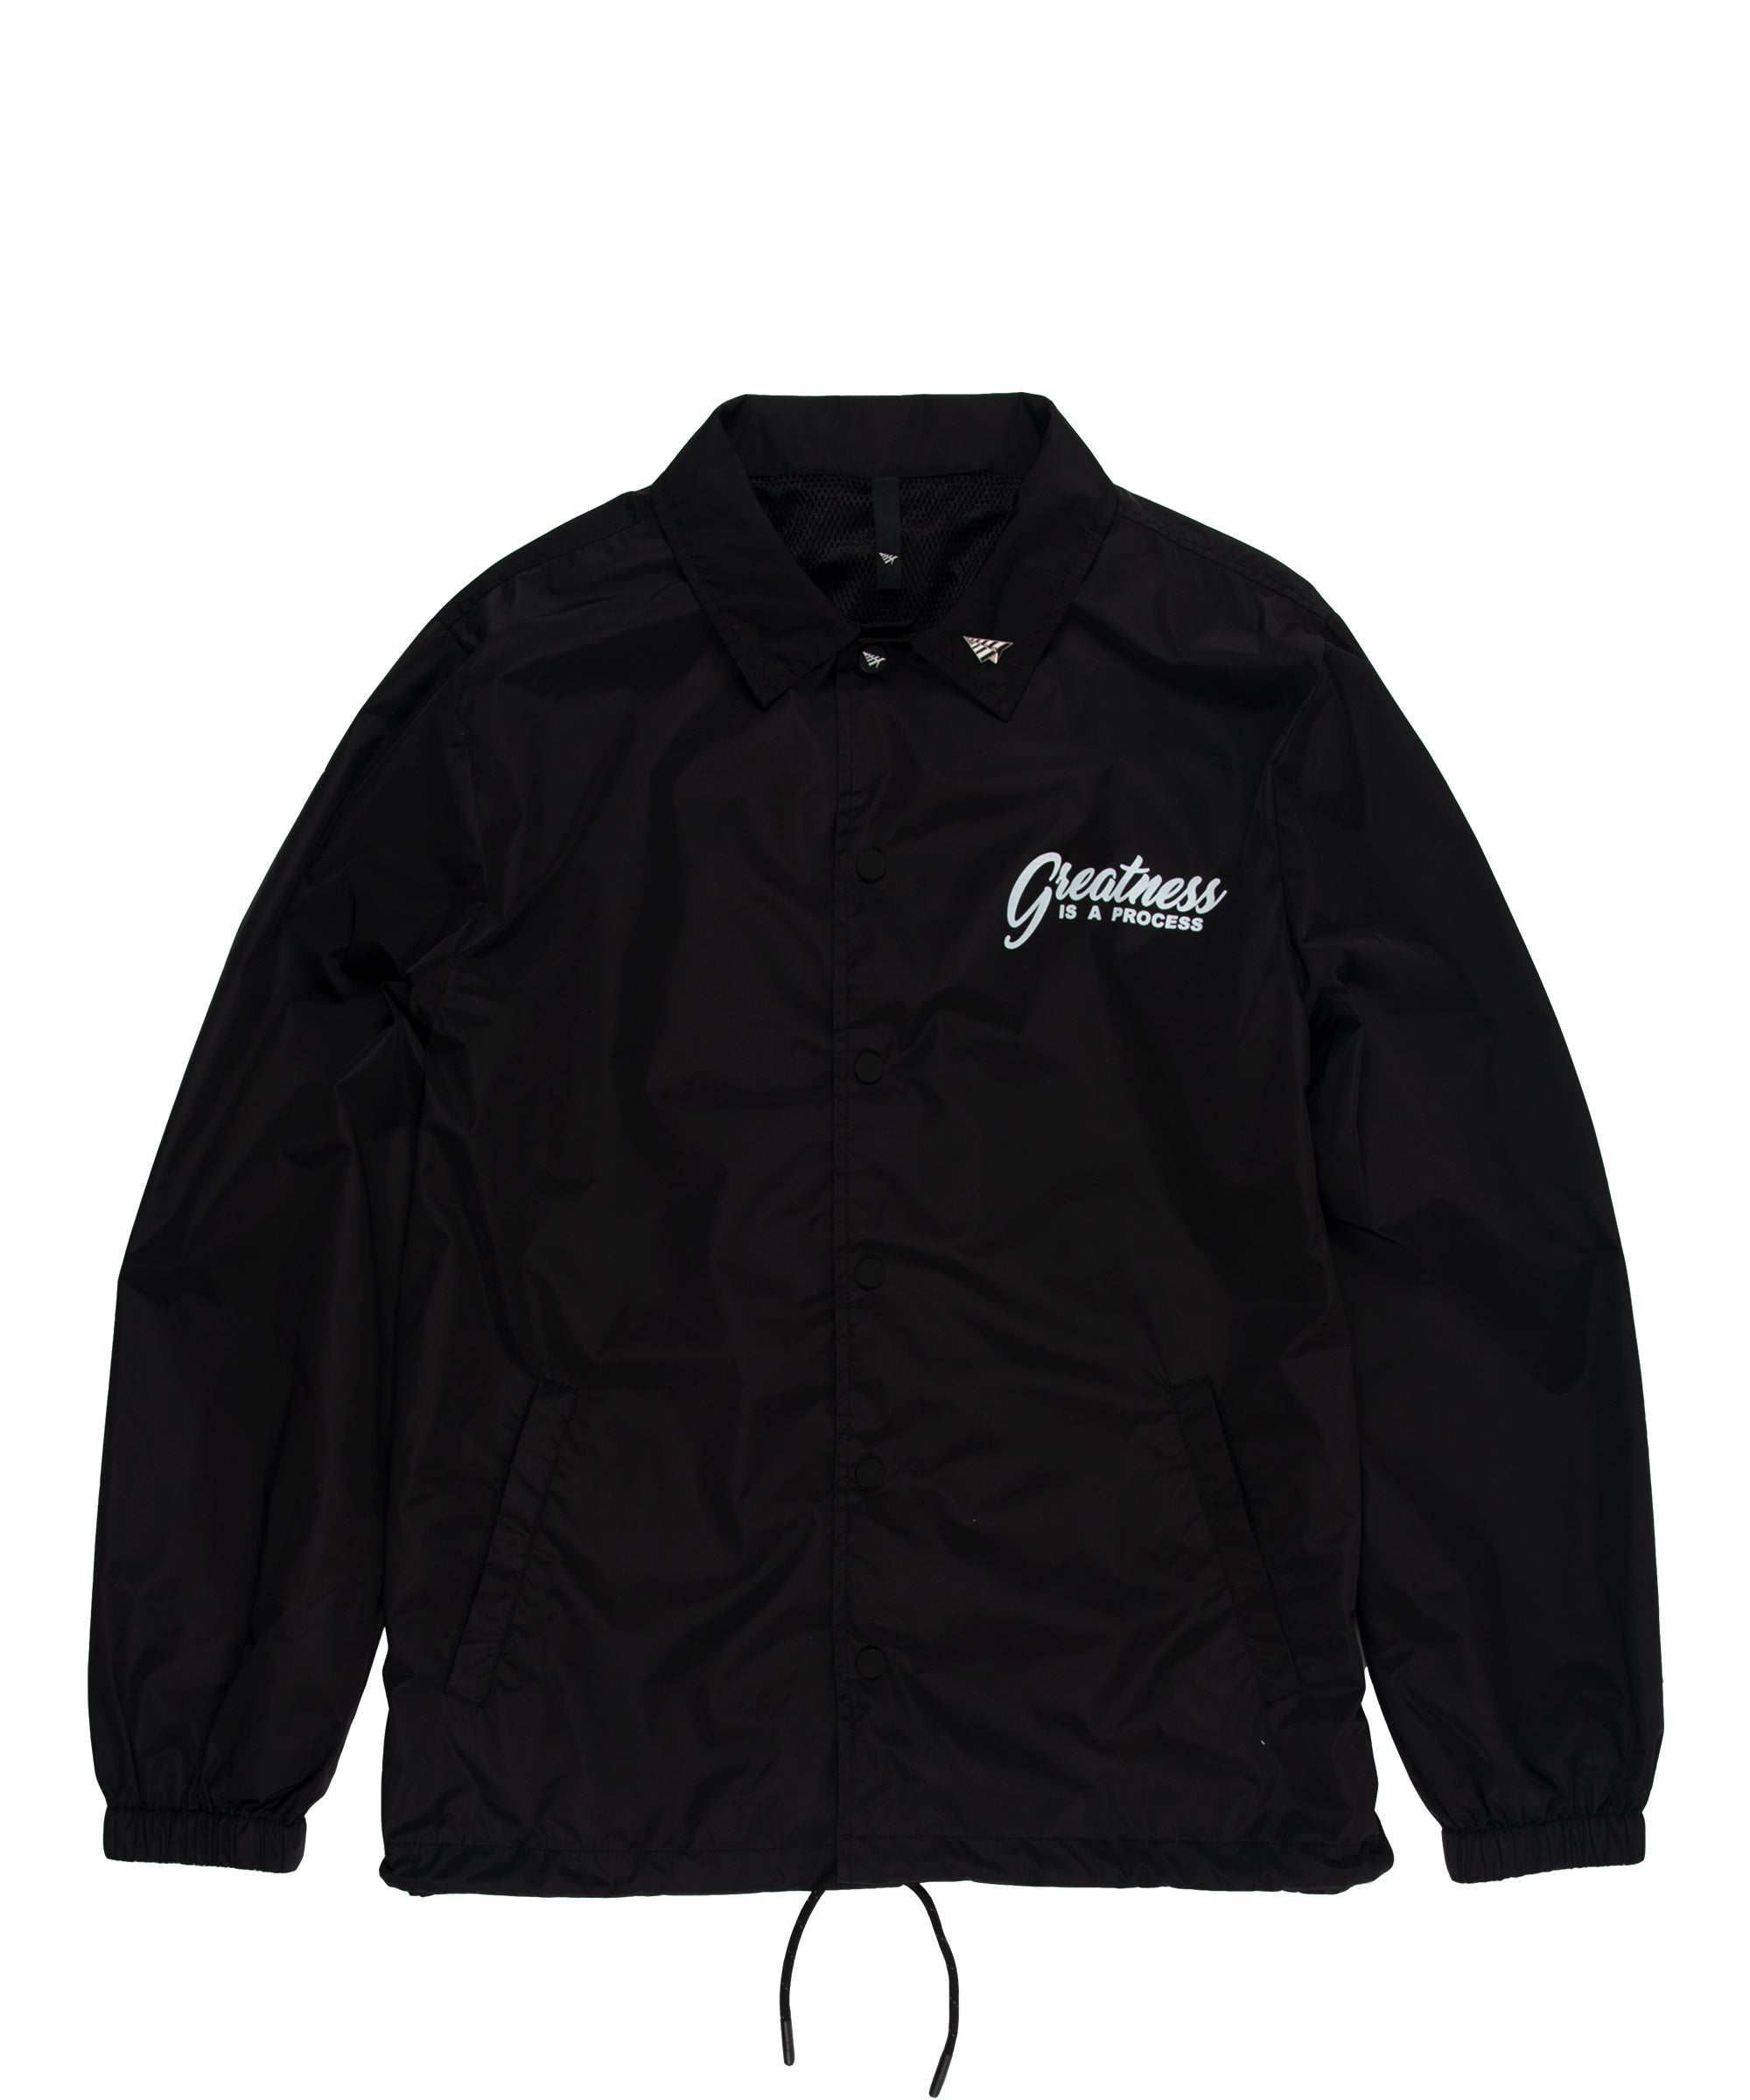 G.I.A.P. Coaches Jacket